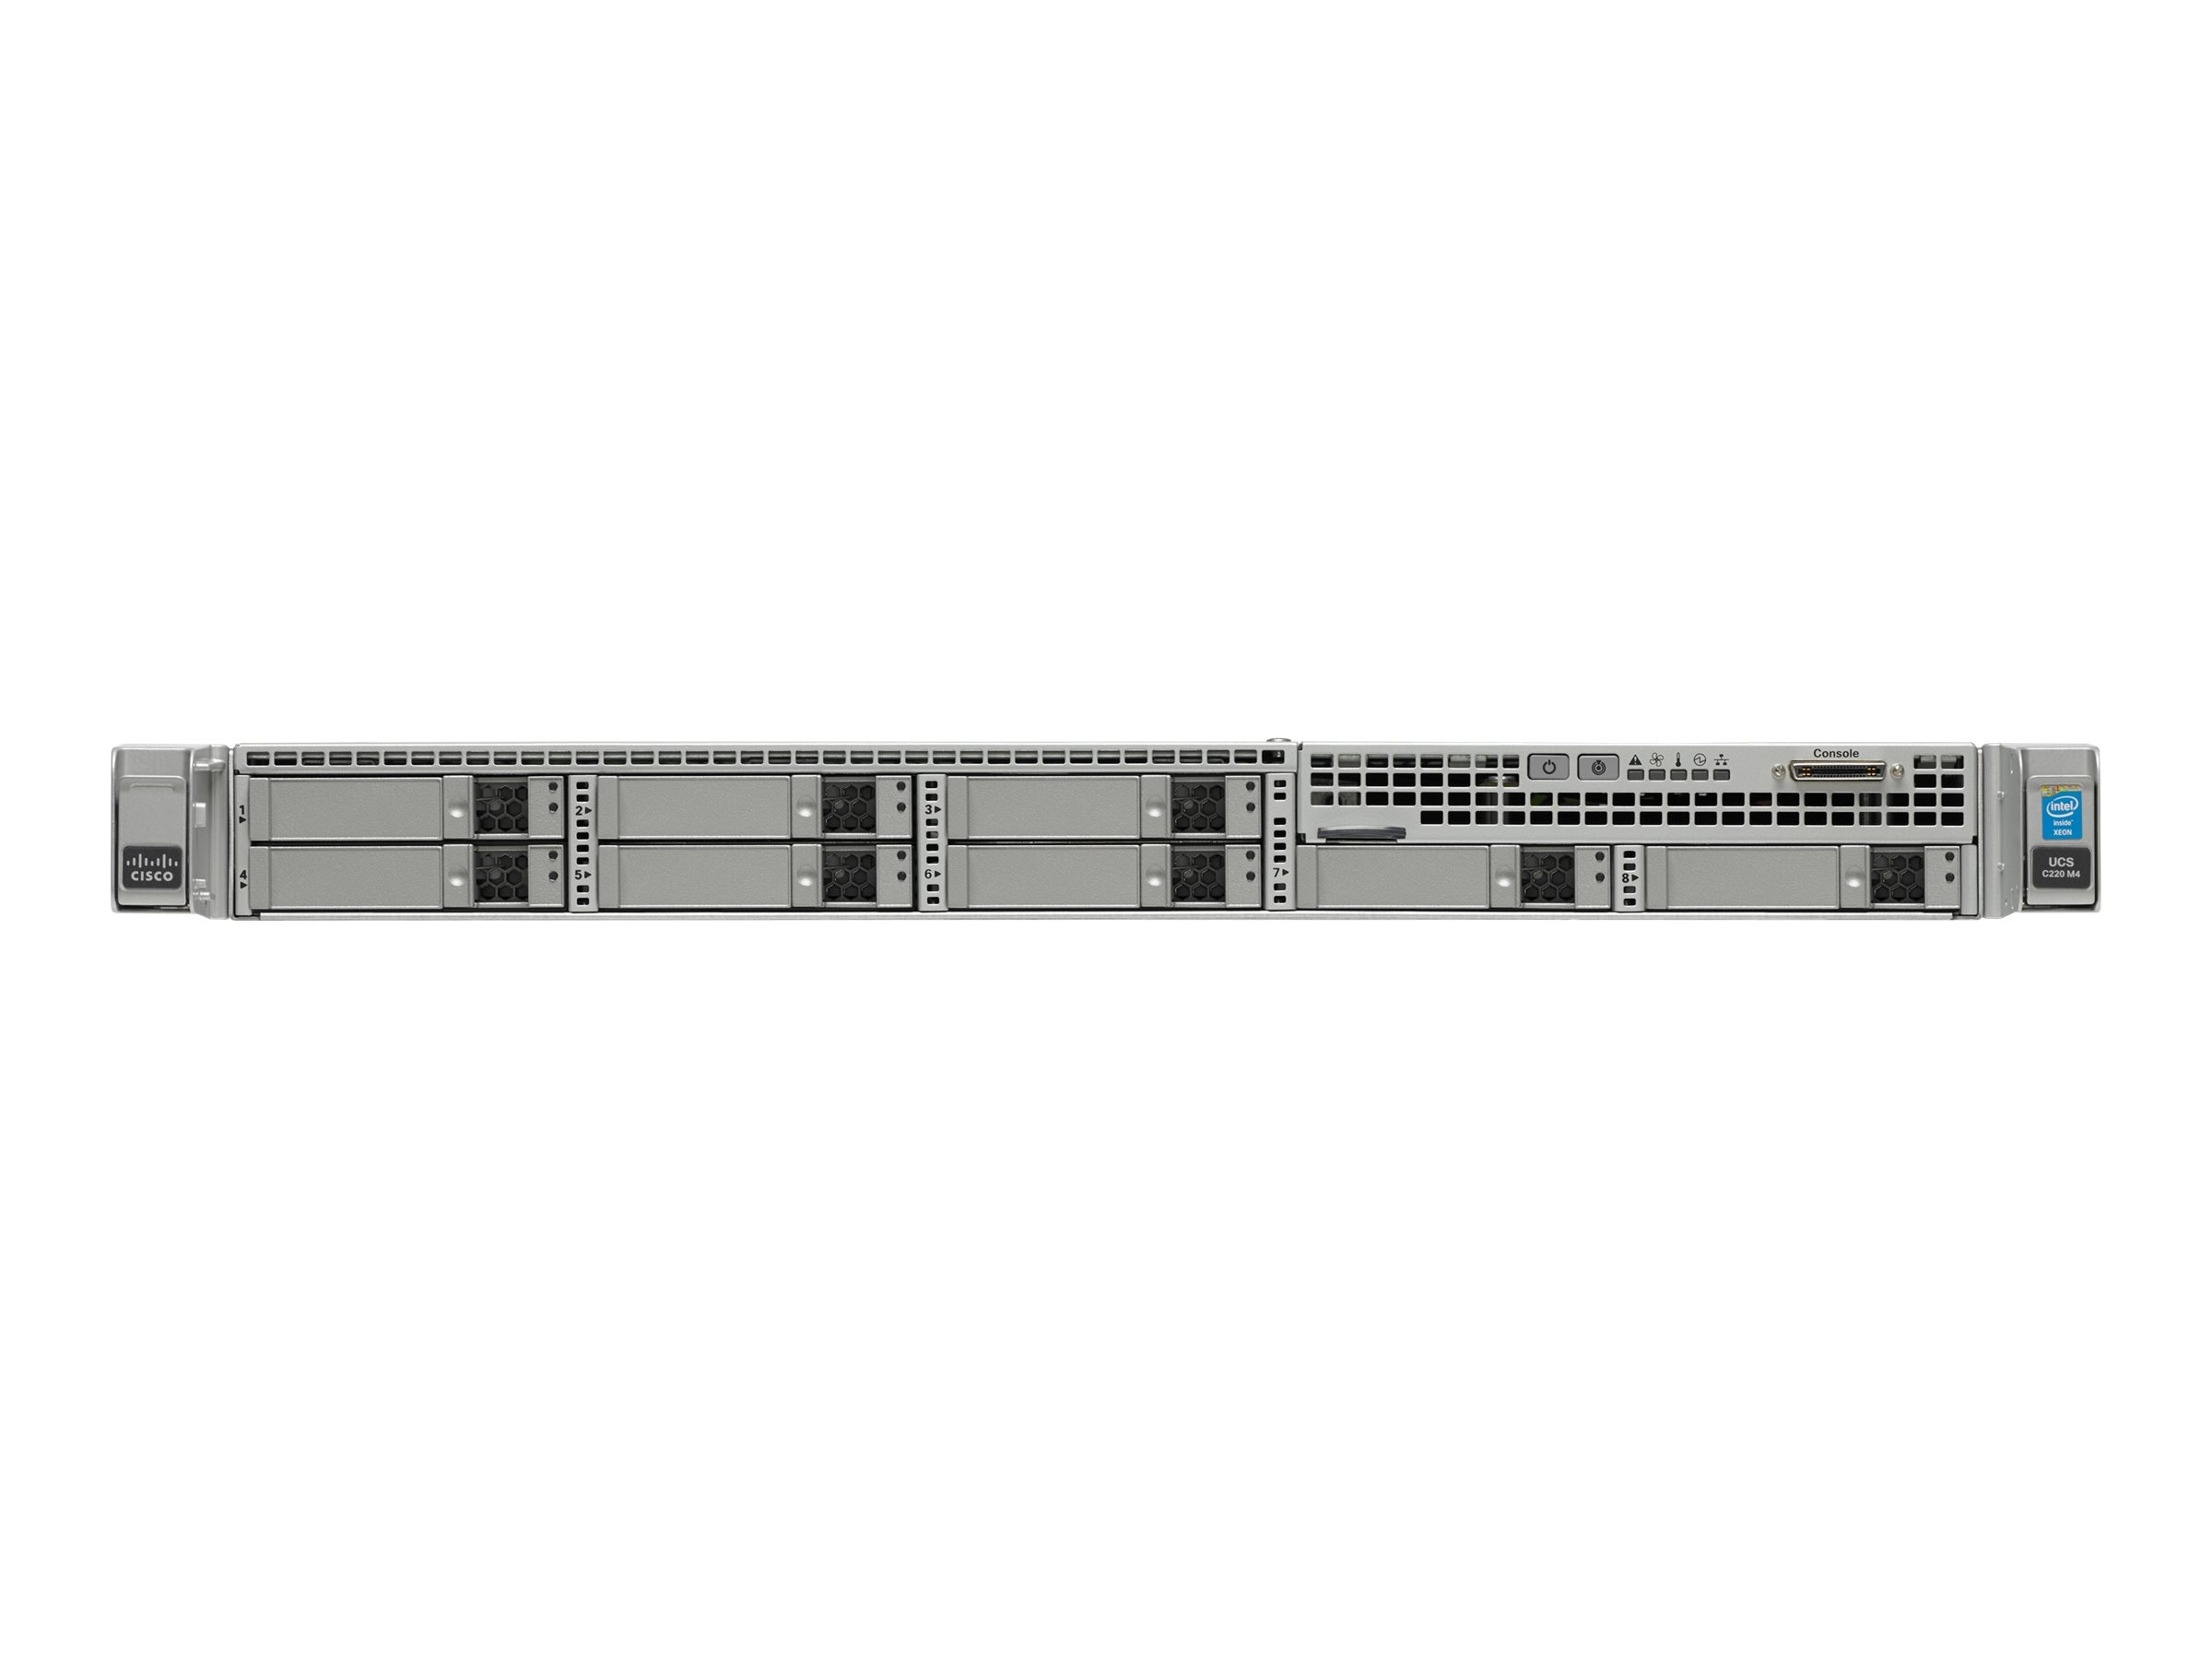 Cisco UCS Smart Play Select C220 M4S Advanced (2x)E5-2670 v3 2.3GHz 128GB 8x2.5Bays VIC1227 2x10Gb 2x770W